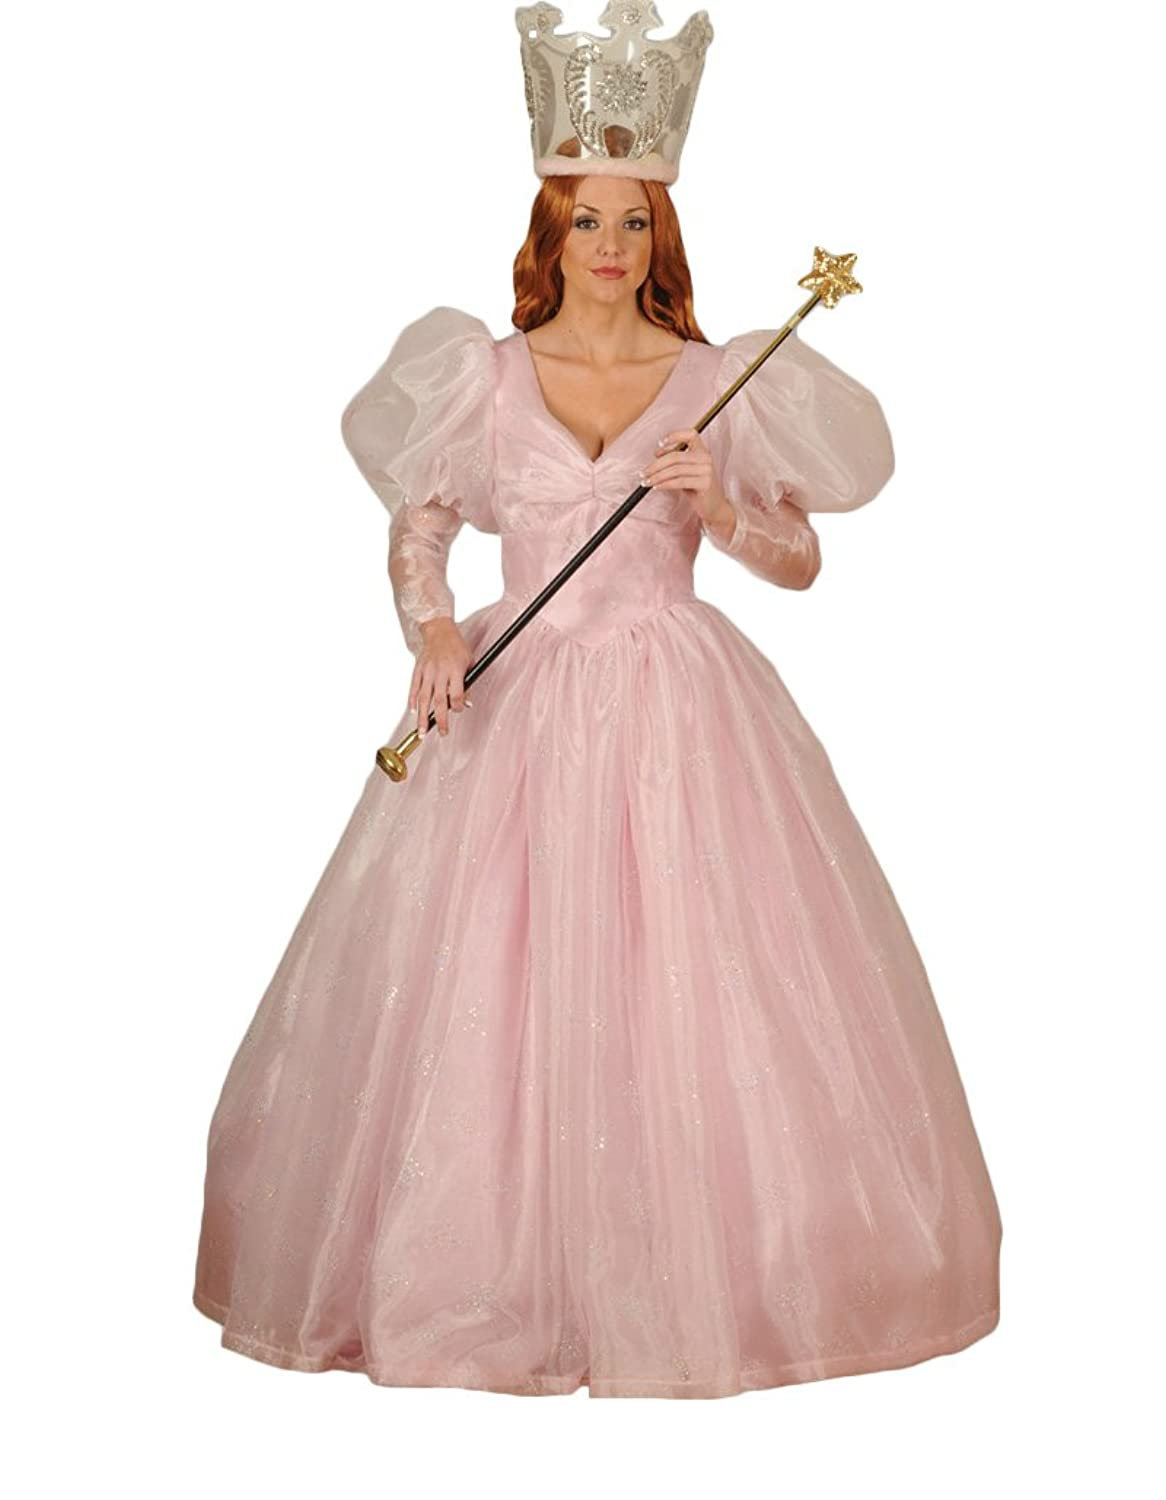 Amazon.com: Women's Glinda the Good Witch Dress Theater Costume ...